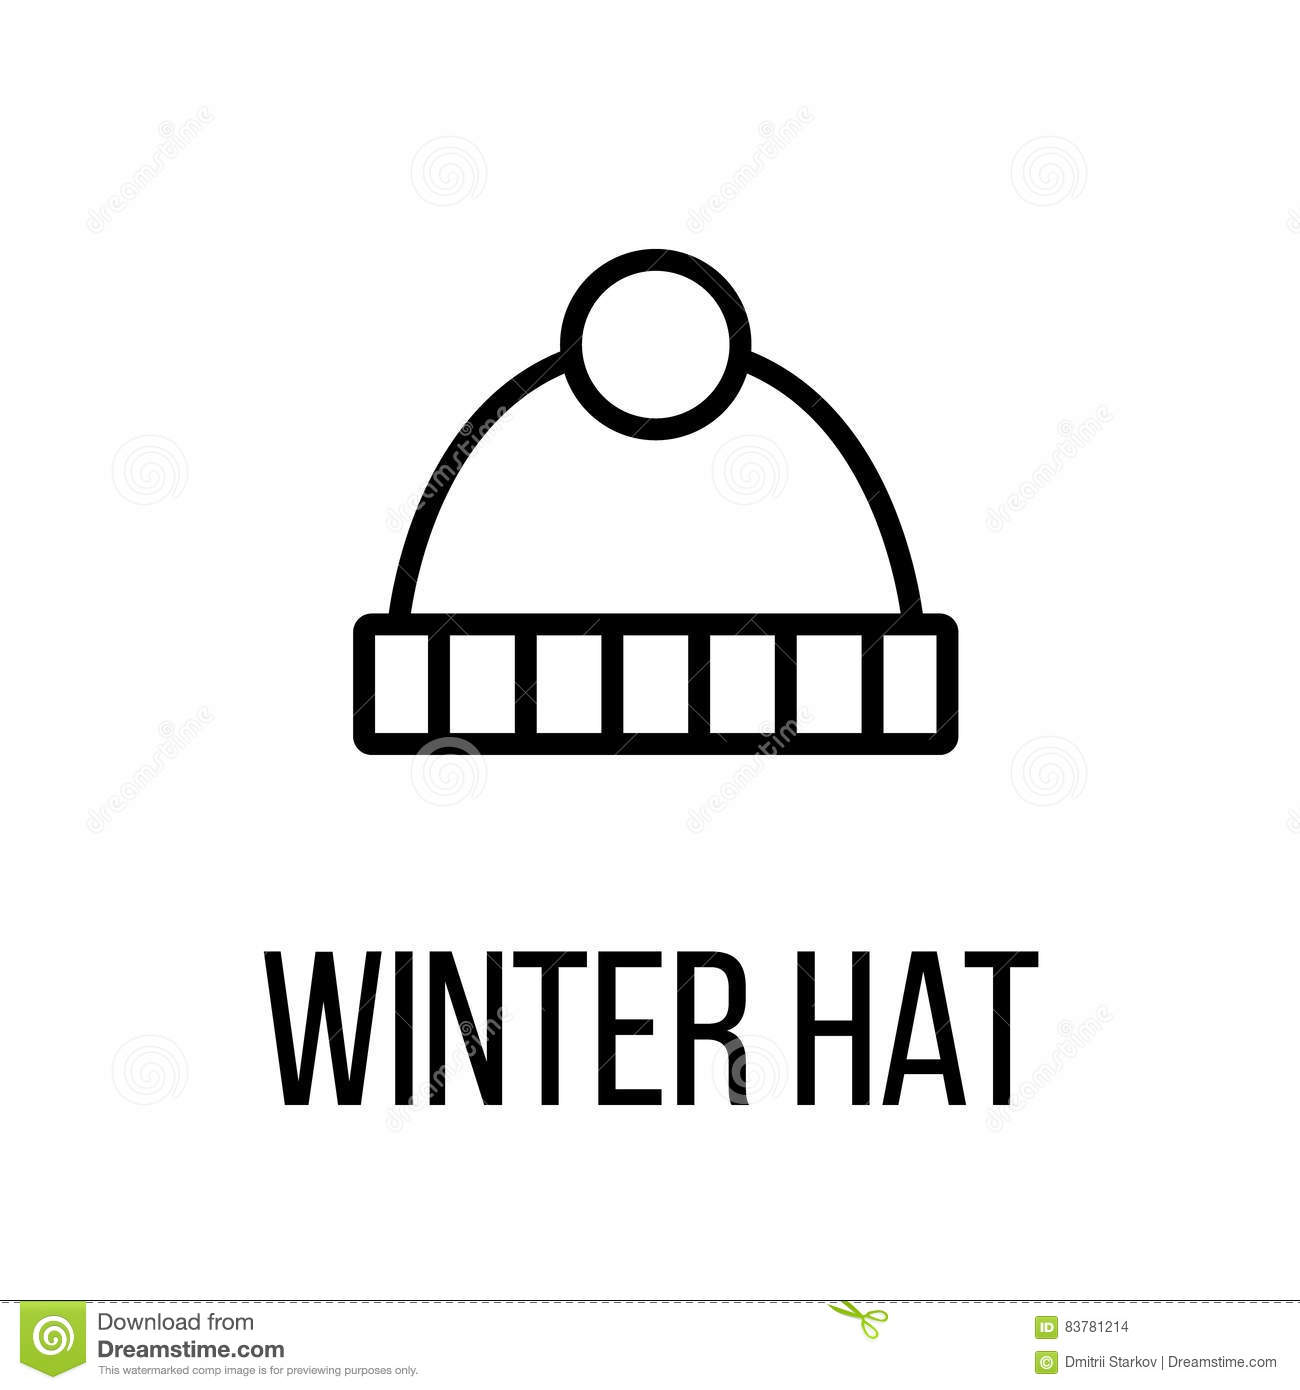 e390ea84ee928 Winter hat icon or logo in modern line style. High quality black outline  pictogram for web site design and mobile apps. Vector illustration on a  white ...